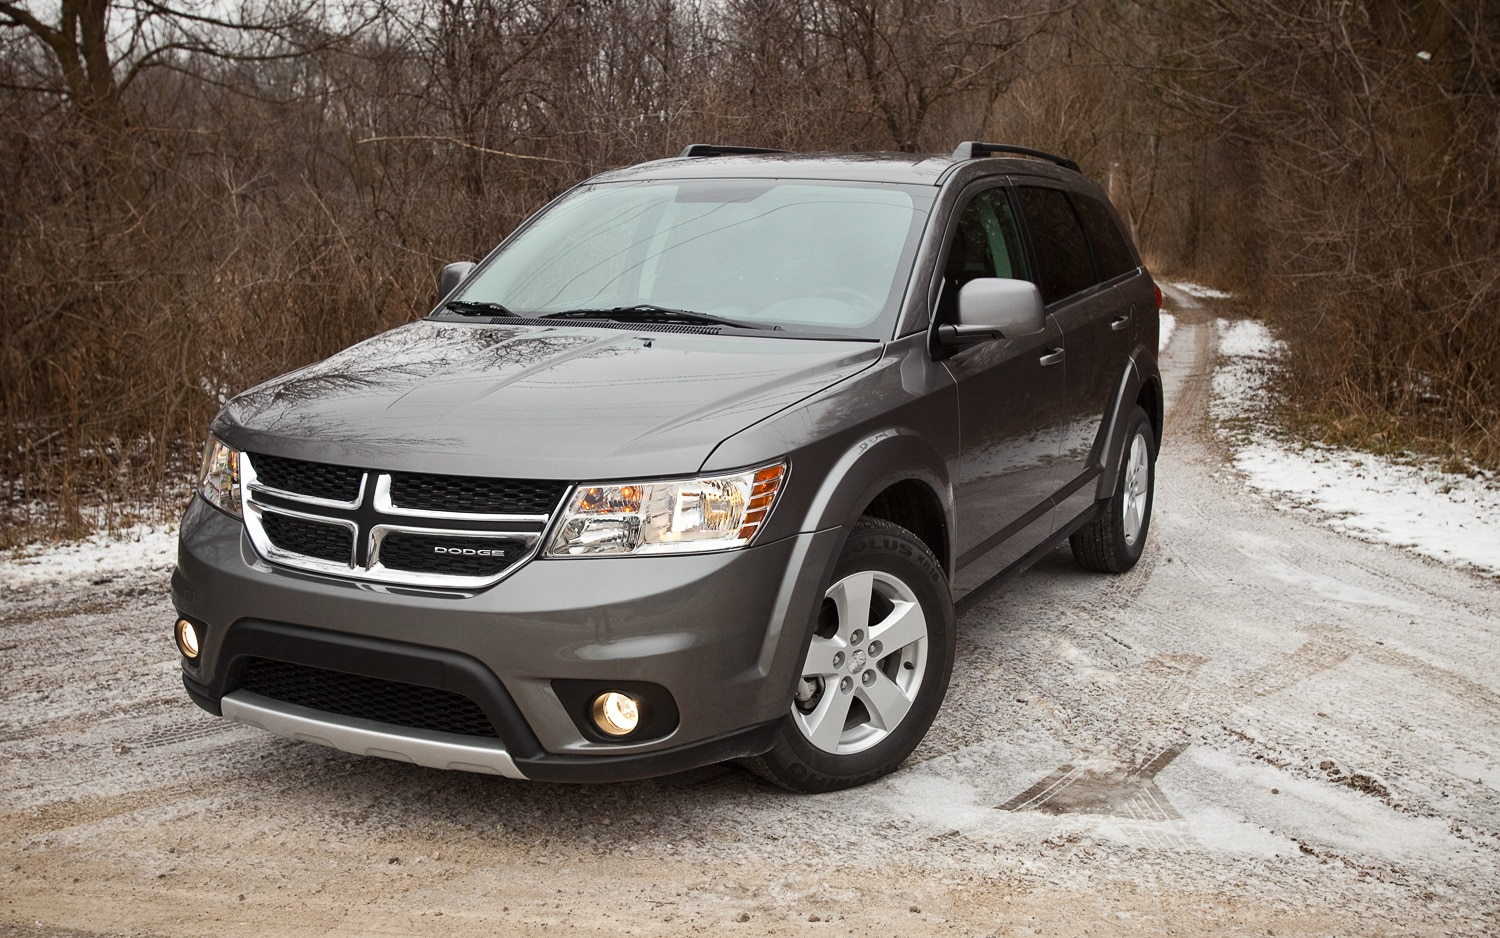 2012 Dodge Journey Sxt Editors Notebook Automobile